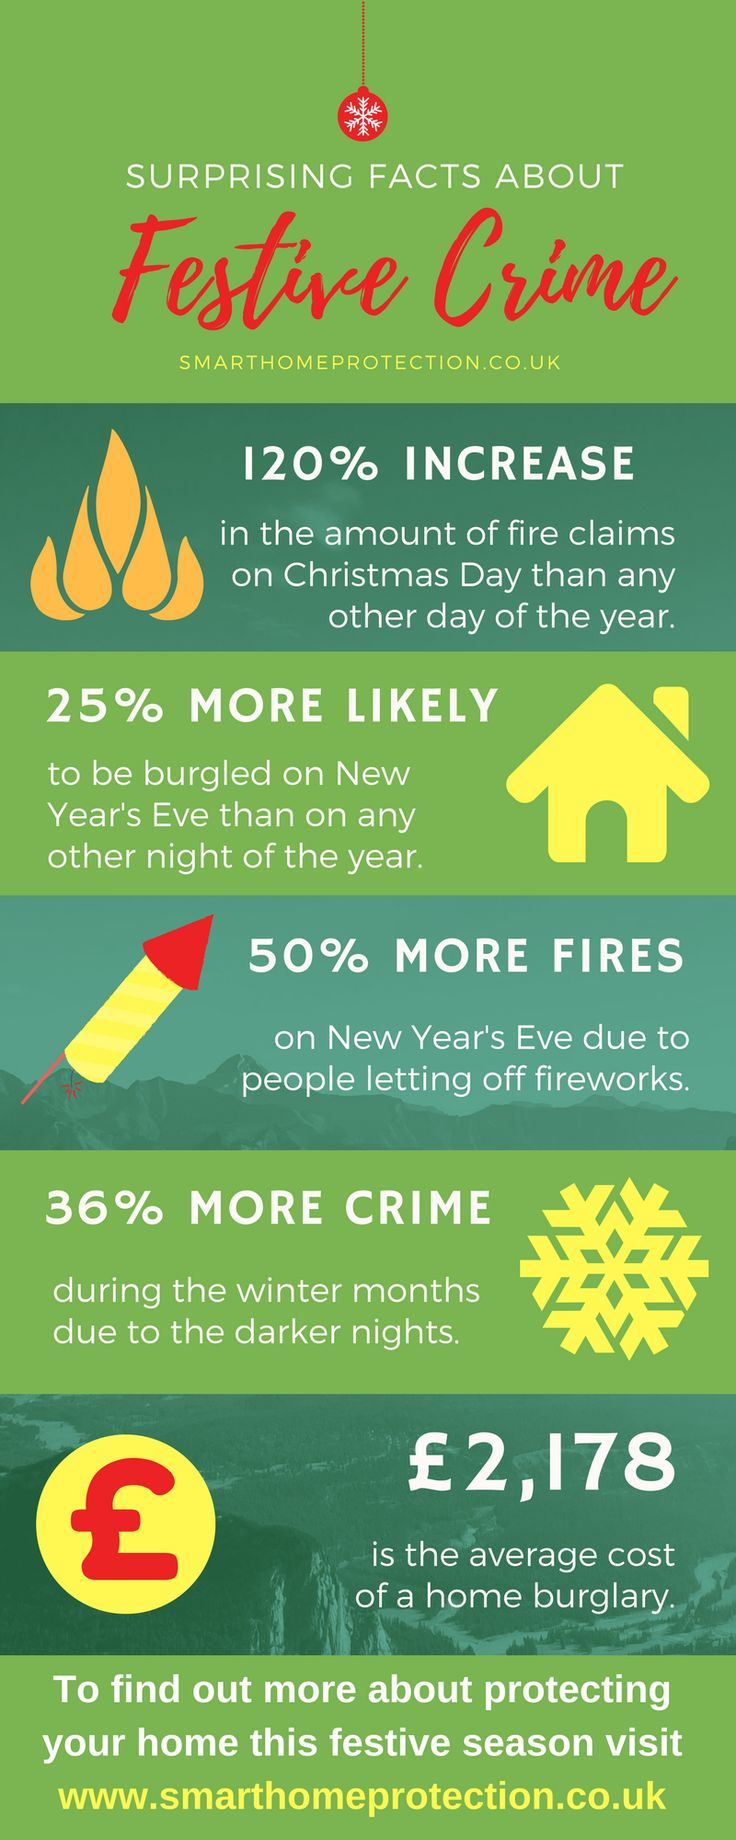 Festive crime - surprising facts you may not know - Smart Home Protection